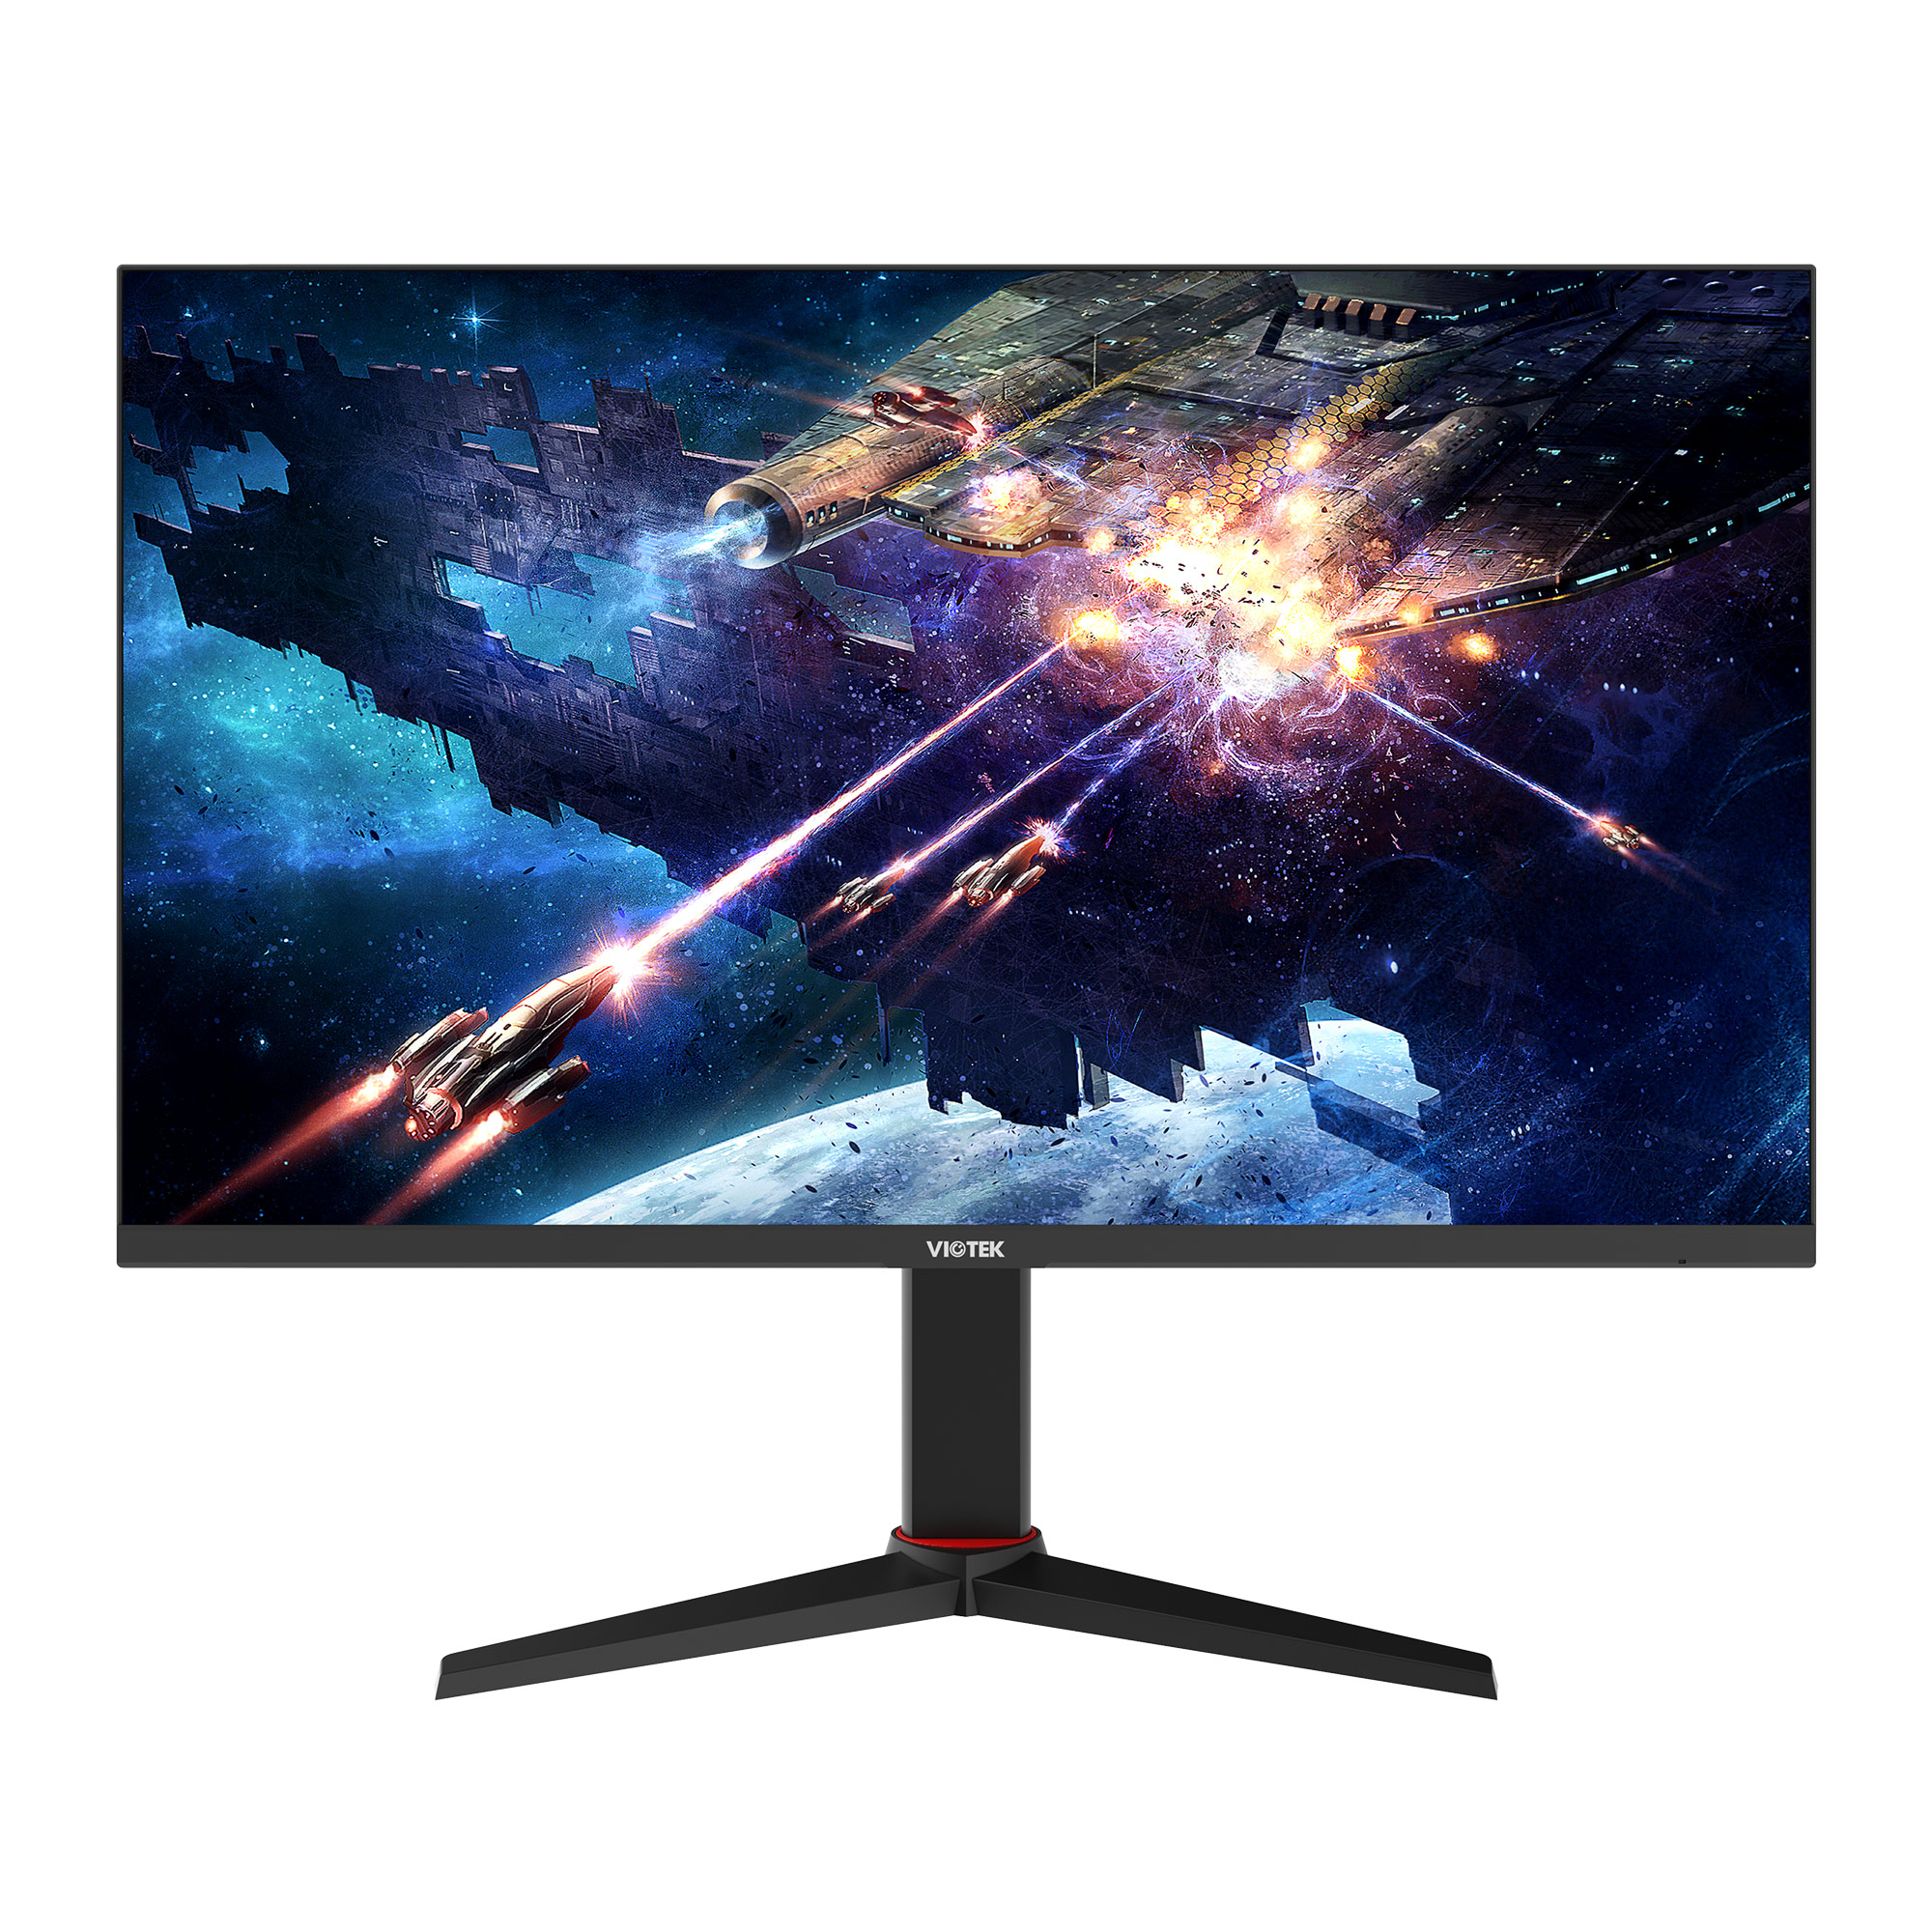 "GFT27CXB 27"" 240Hz Gaming Monitor — 1MS, FHD, FreeSync, G-Sync Ready 